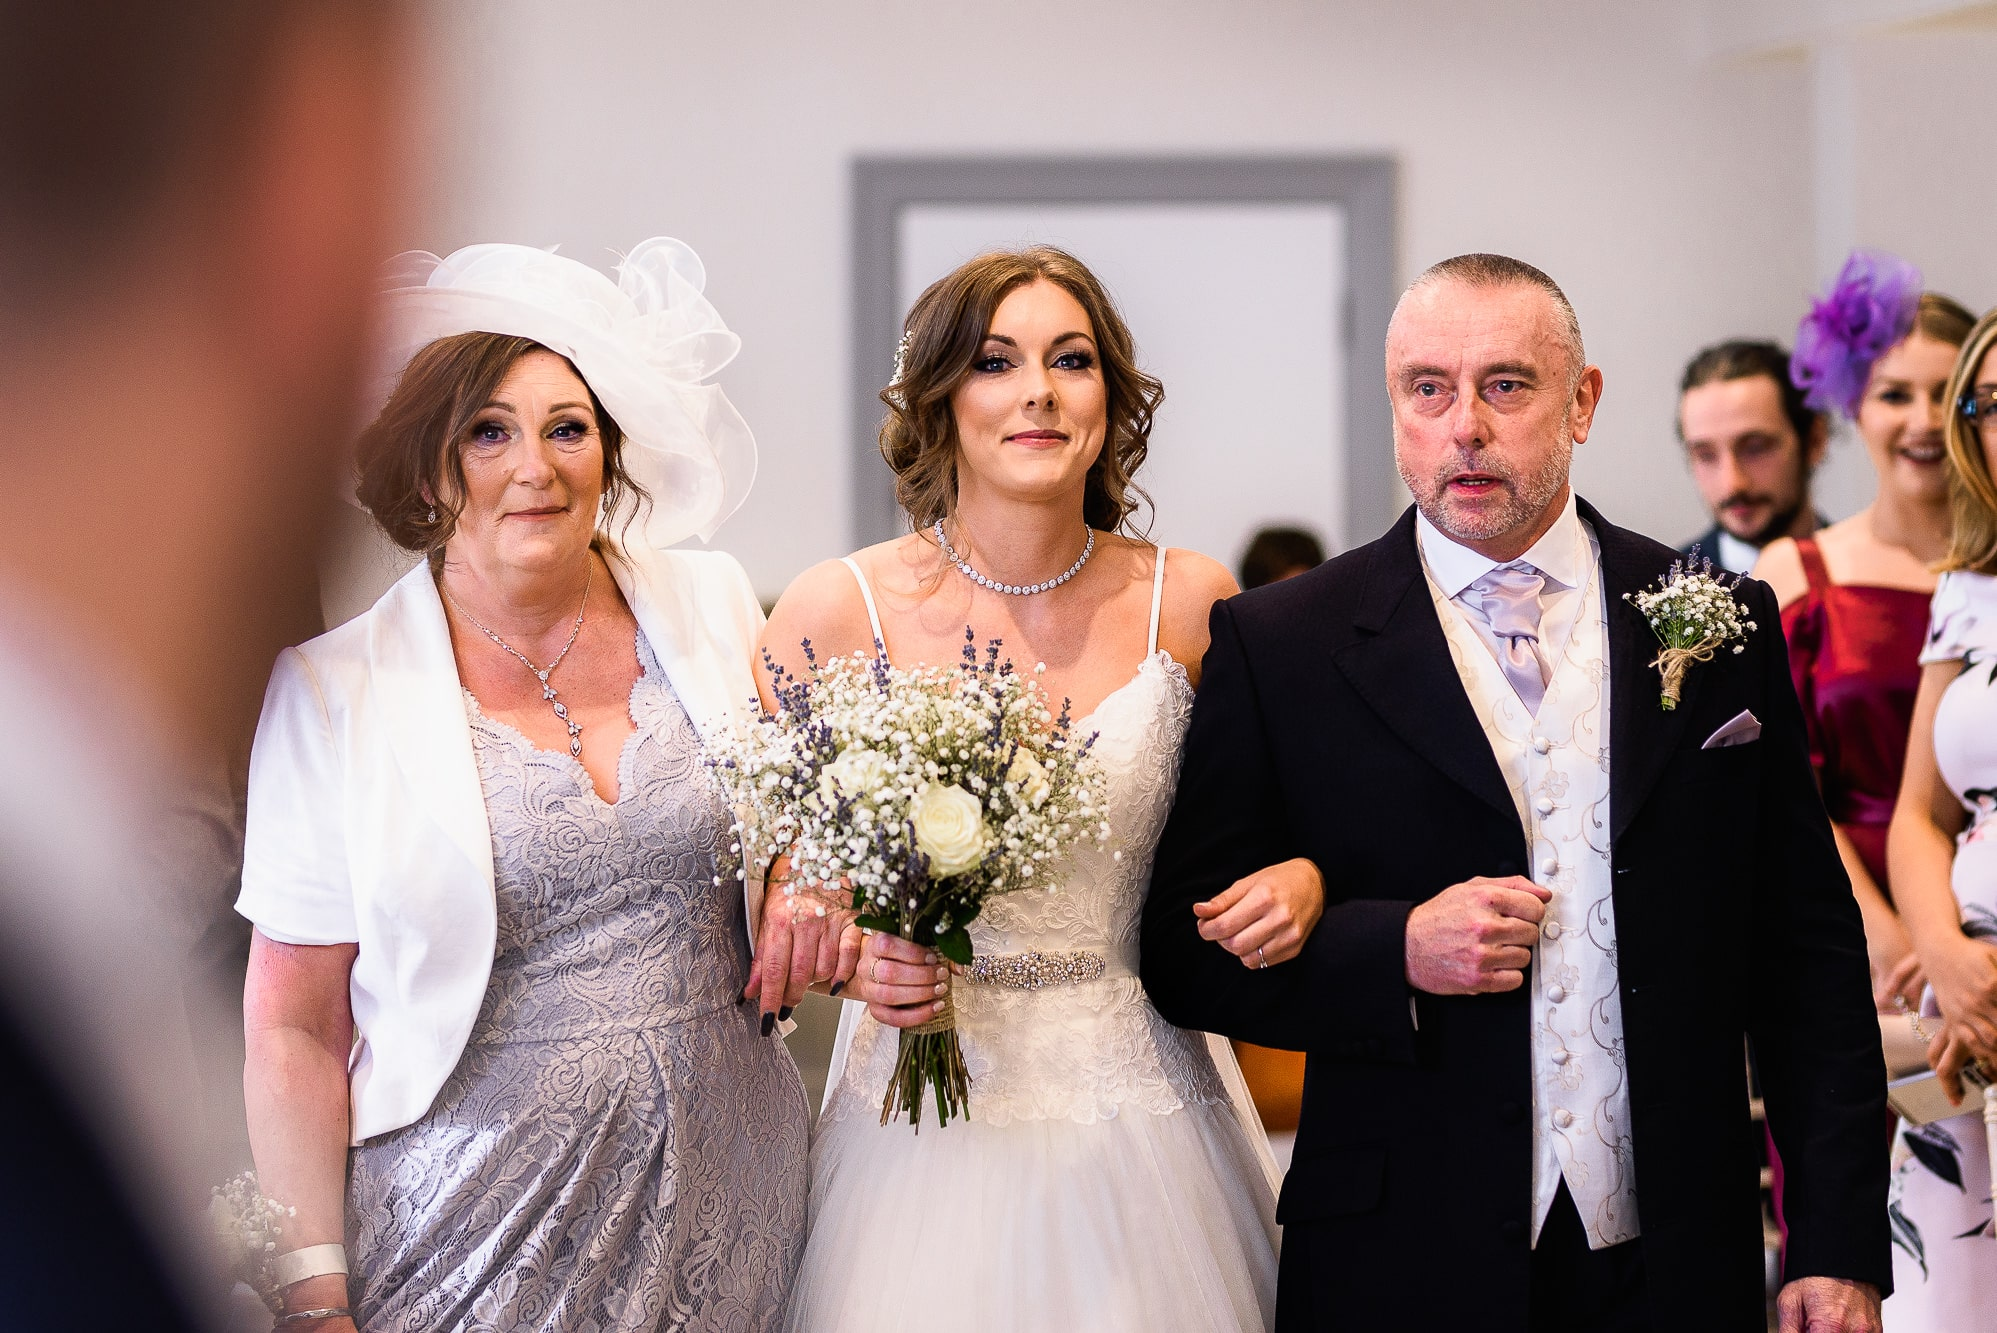 Bride walking down the aisle with her parents